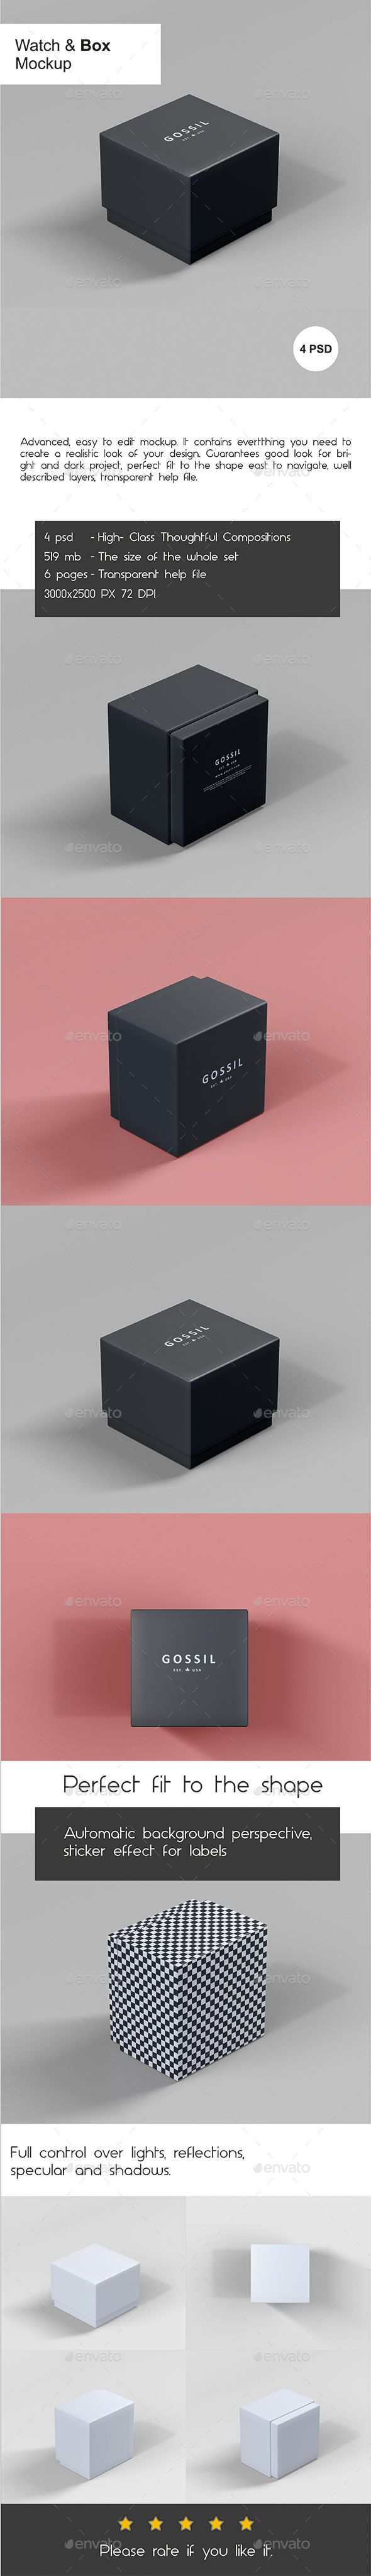 Download Watch Box Mock Up Box Mockup Mockup Design Packaging Mockup